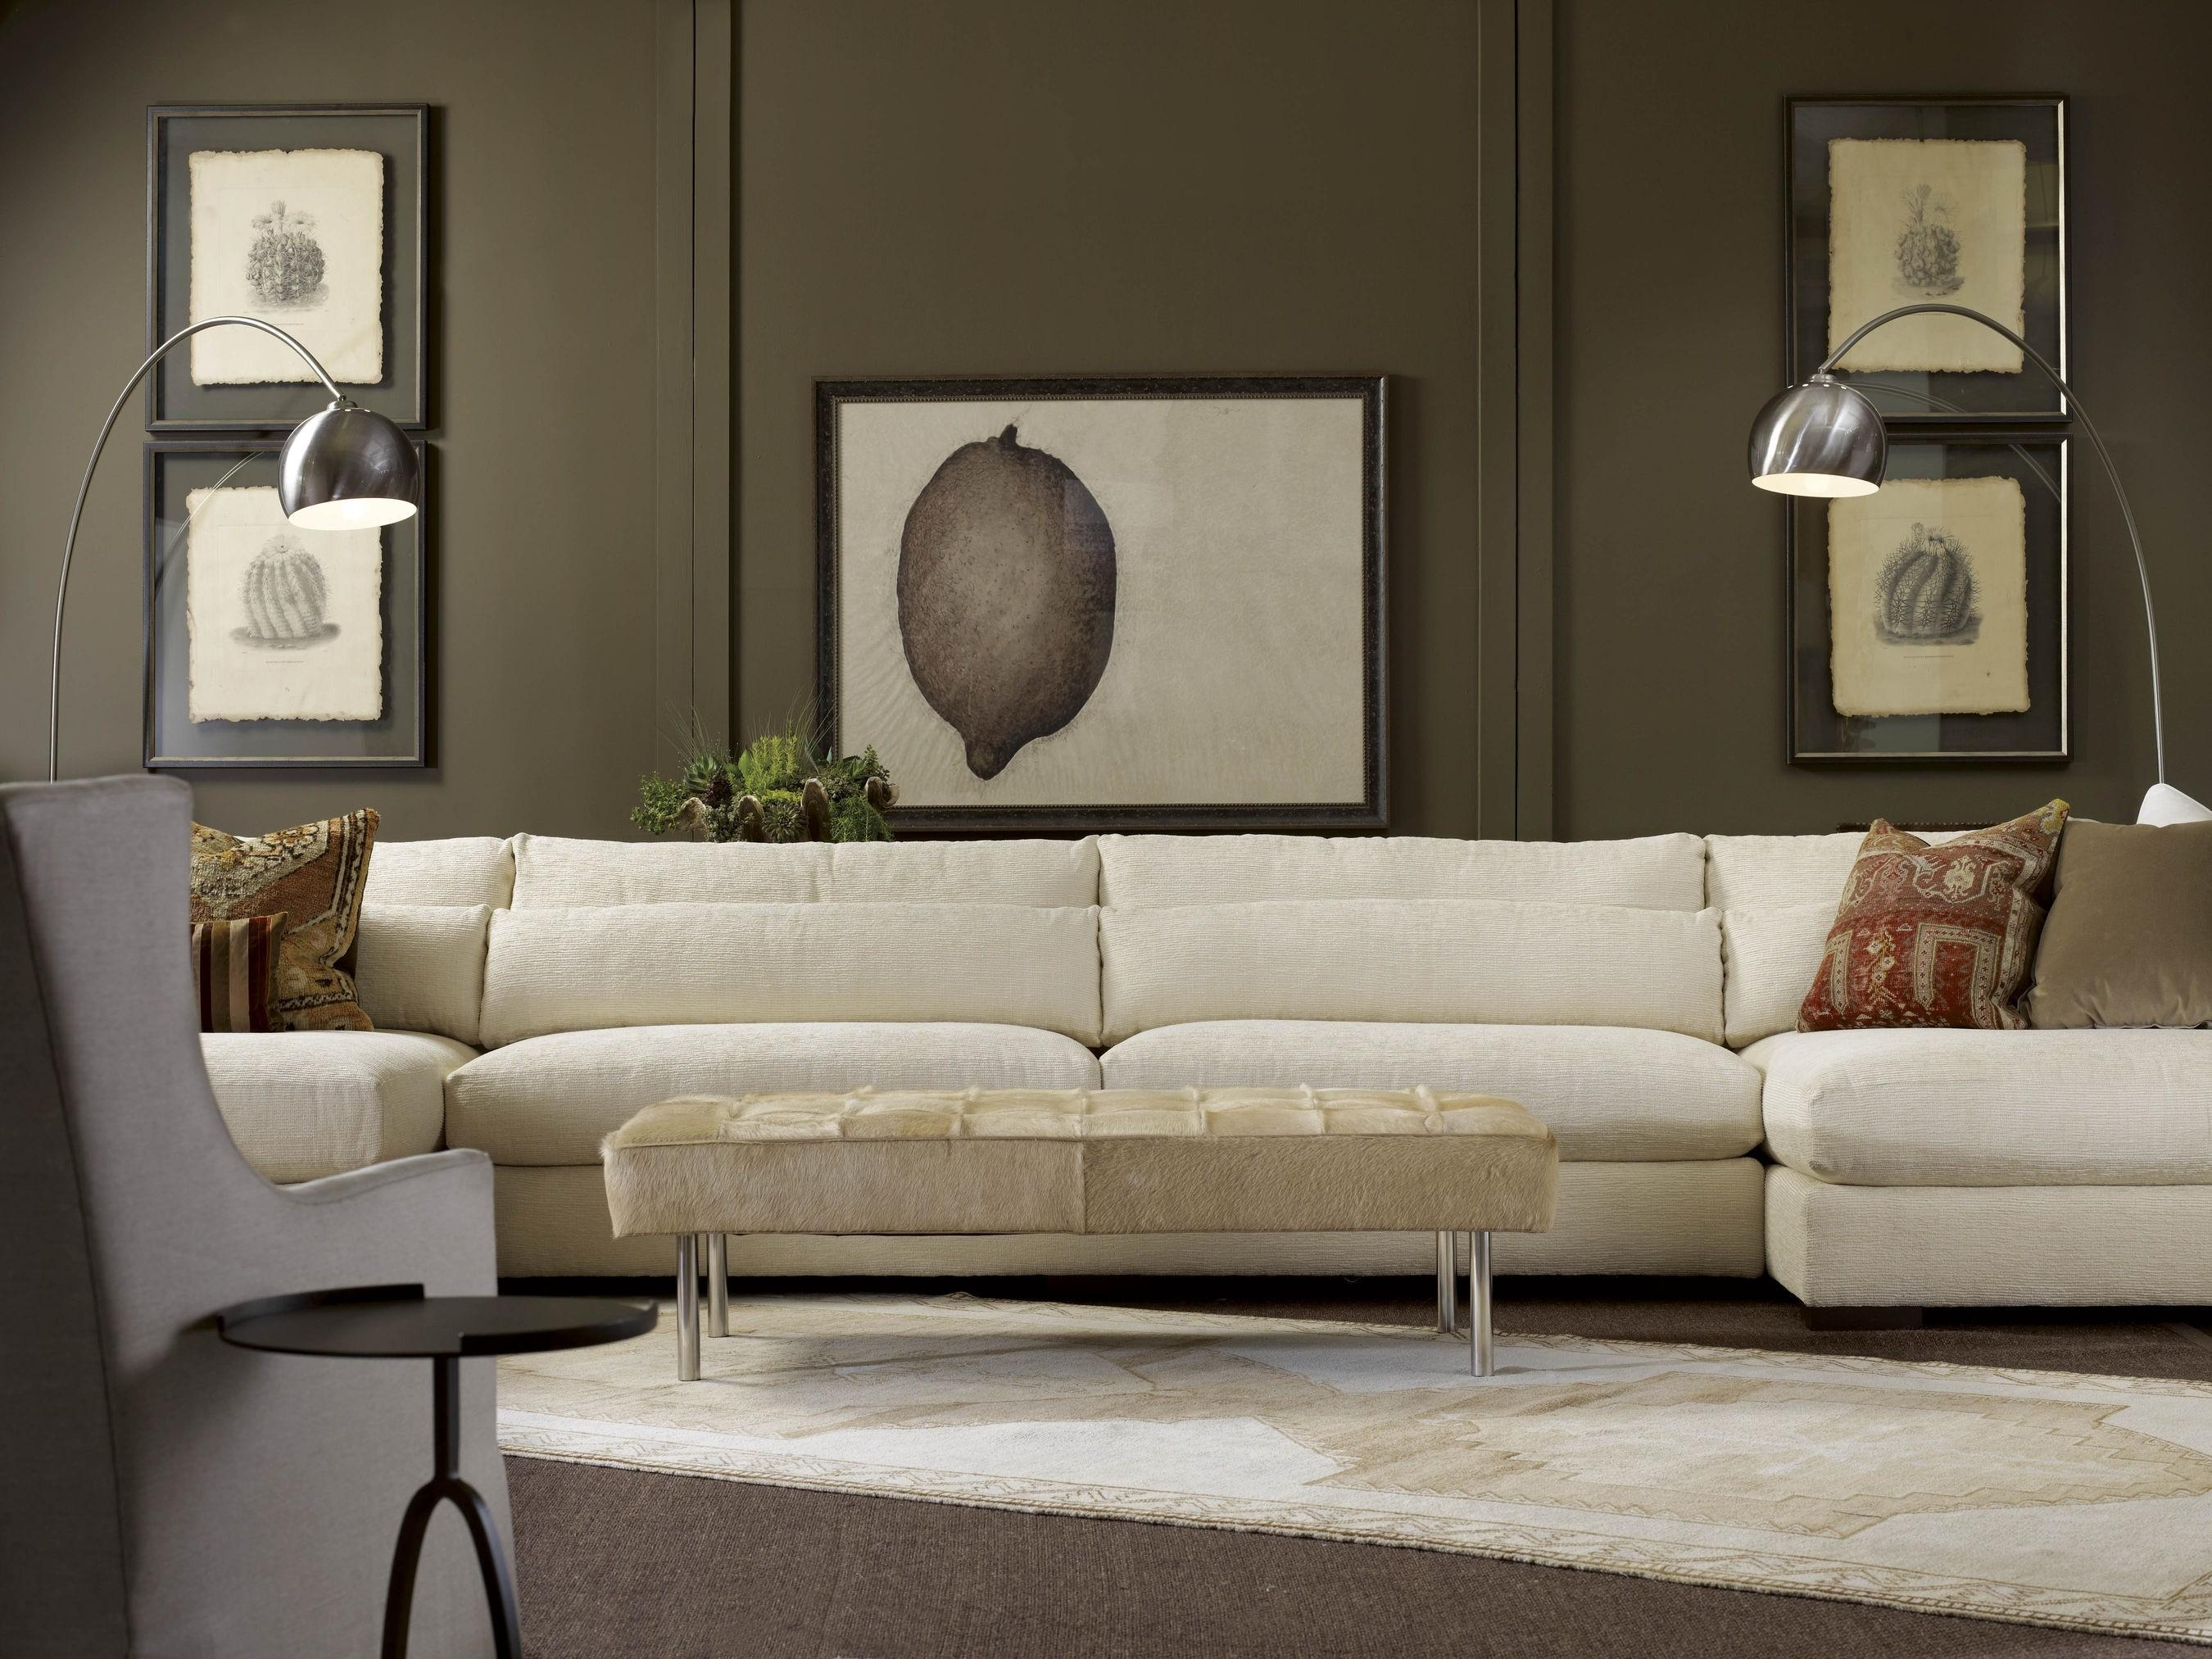 American Furniture | Menlo Park Double Sectional | Lee Industries For Lee Industries Sectional (Image 2 of 20)